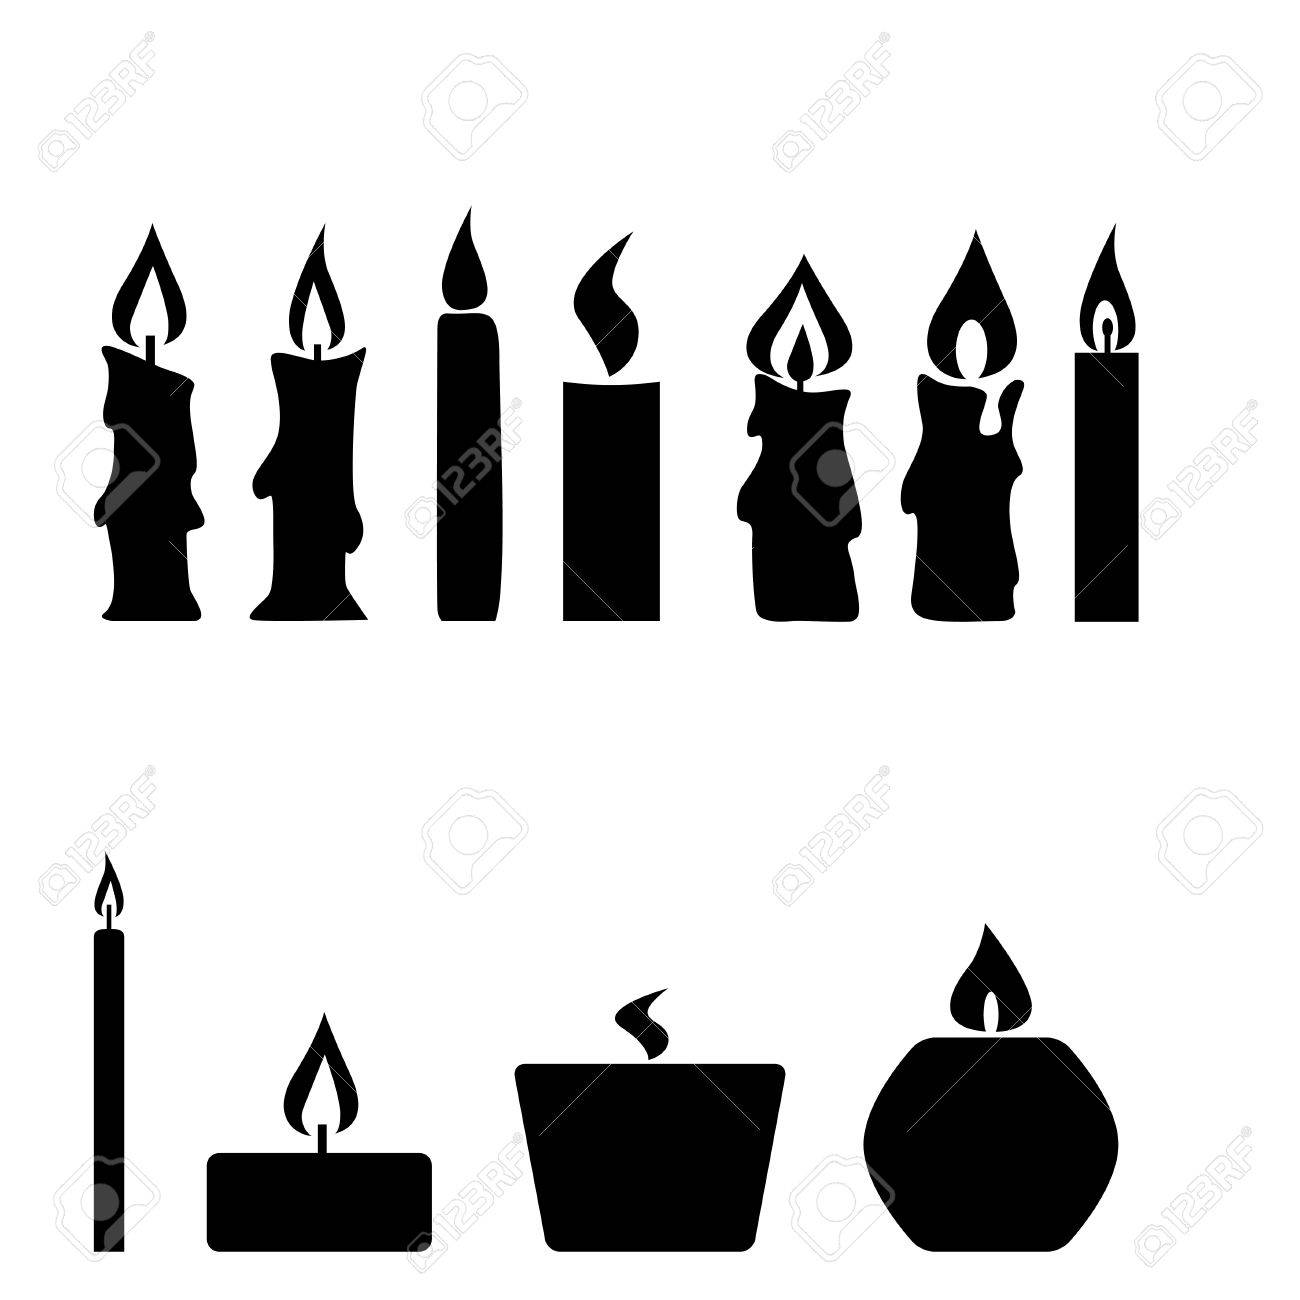 Set of candles isolated on white background, vector illustration - 46177815